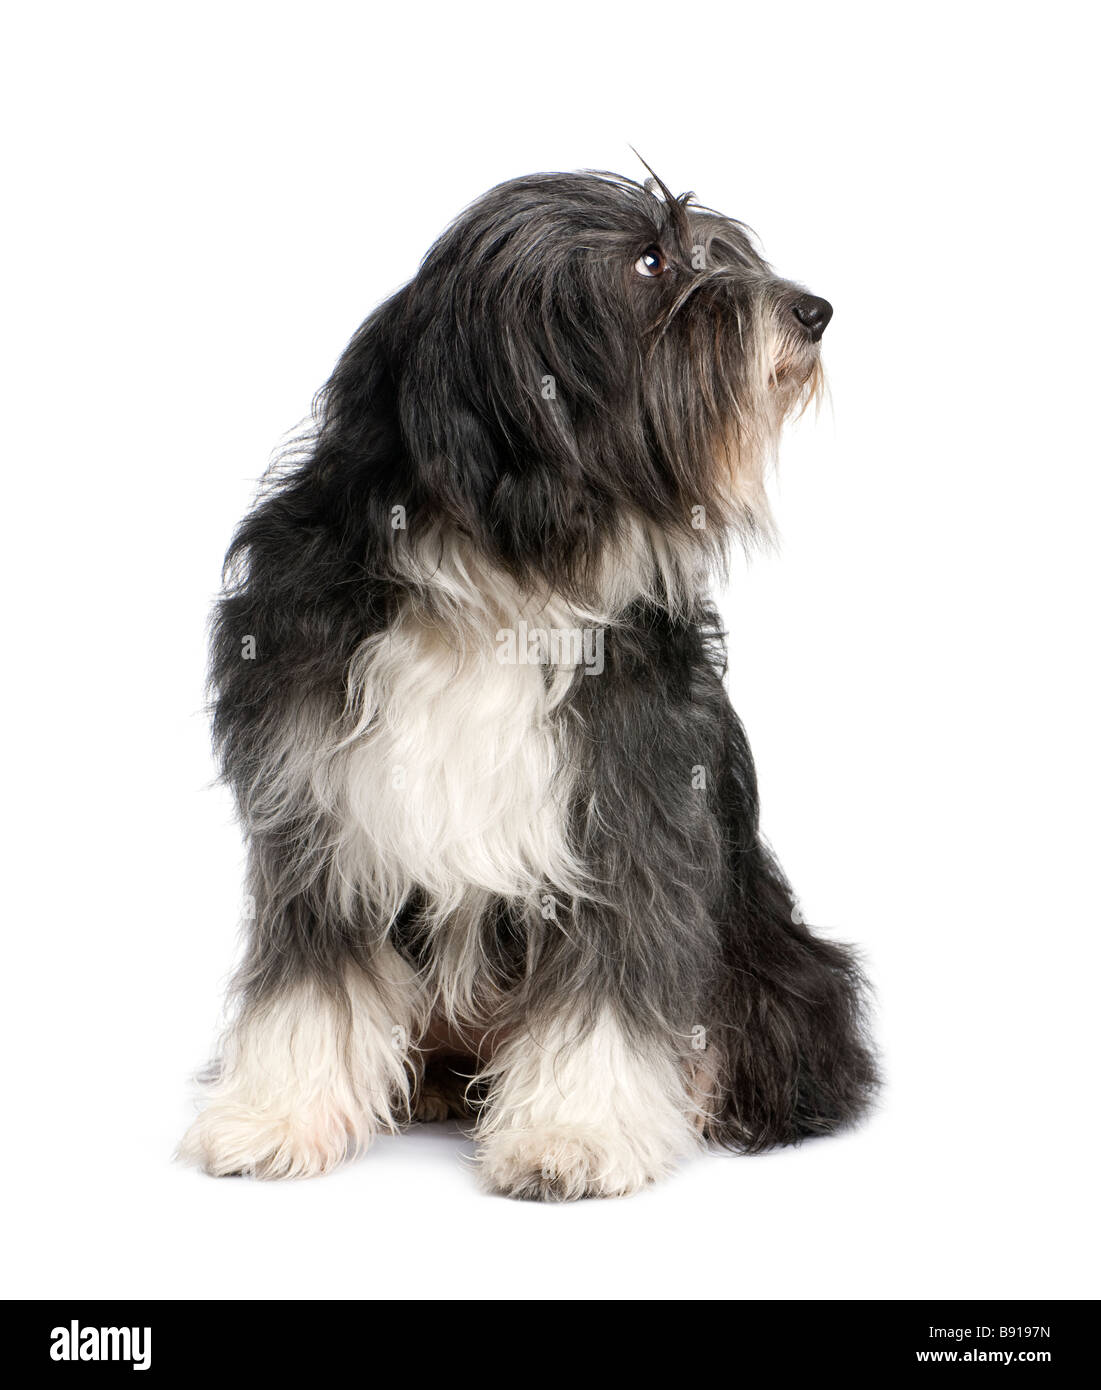 Tibetan Terrier 7 years in front of a white background - Stock Image